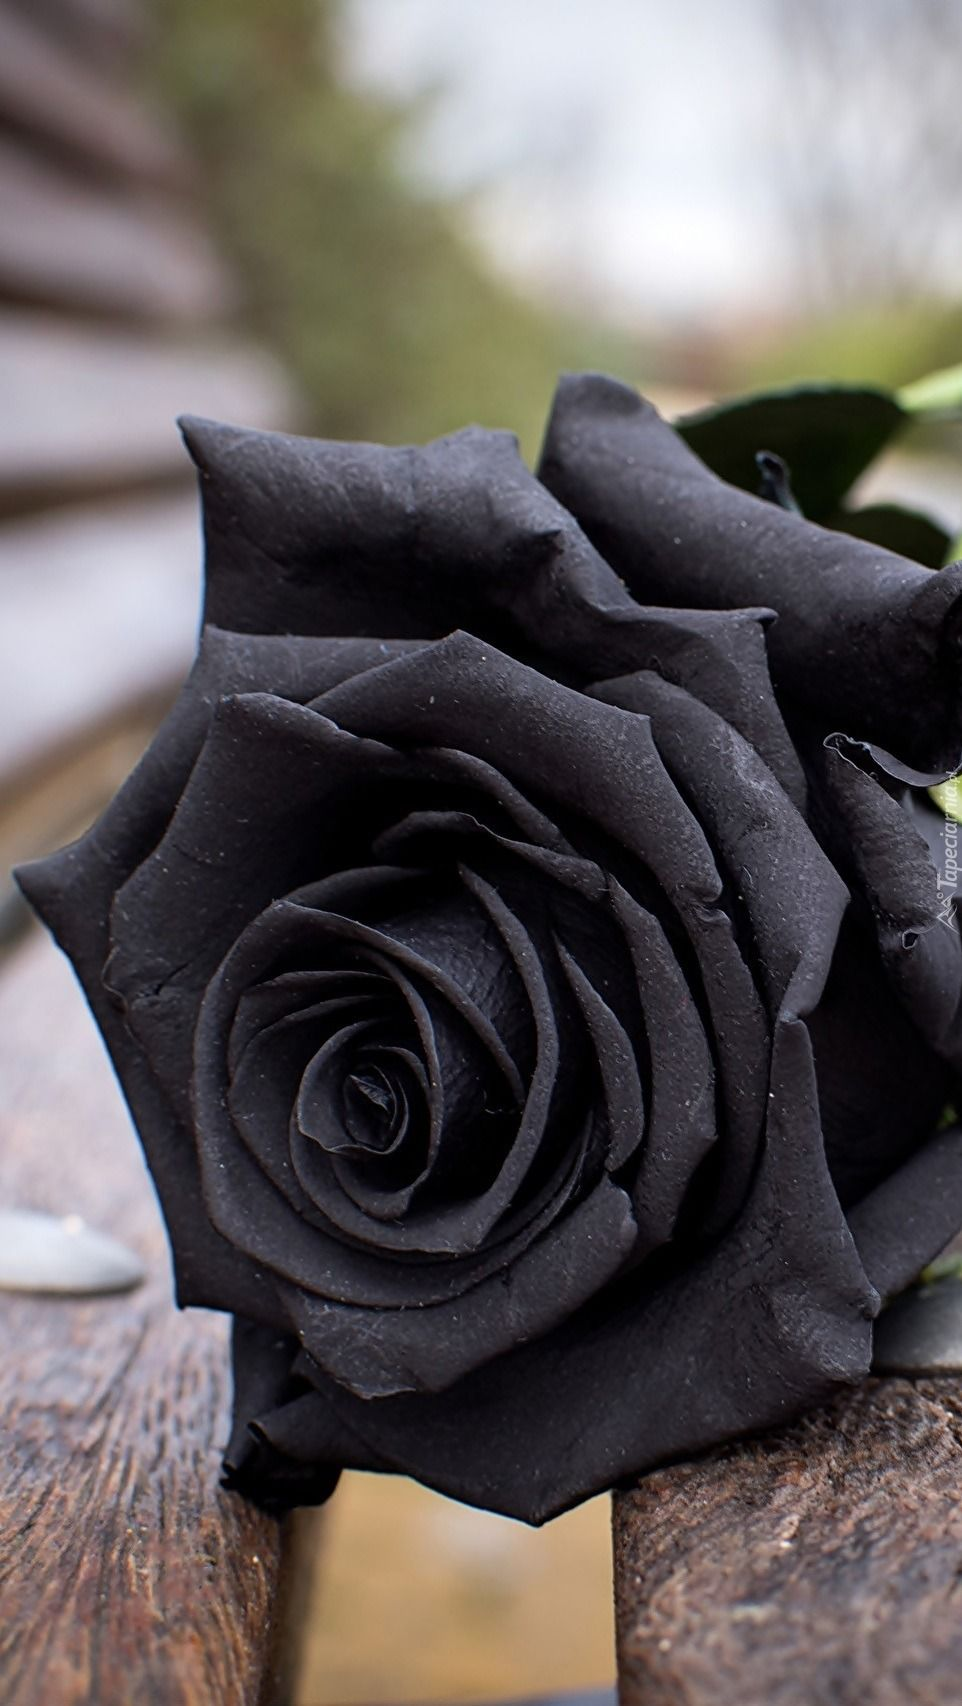 Don T Wait Life Goes Faster Than You Think Black Rose Flower Beautiful Rose Flowers Black Rose